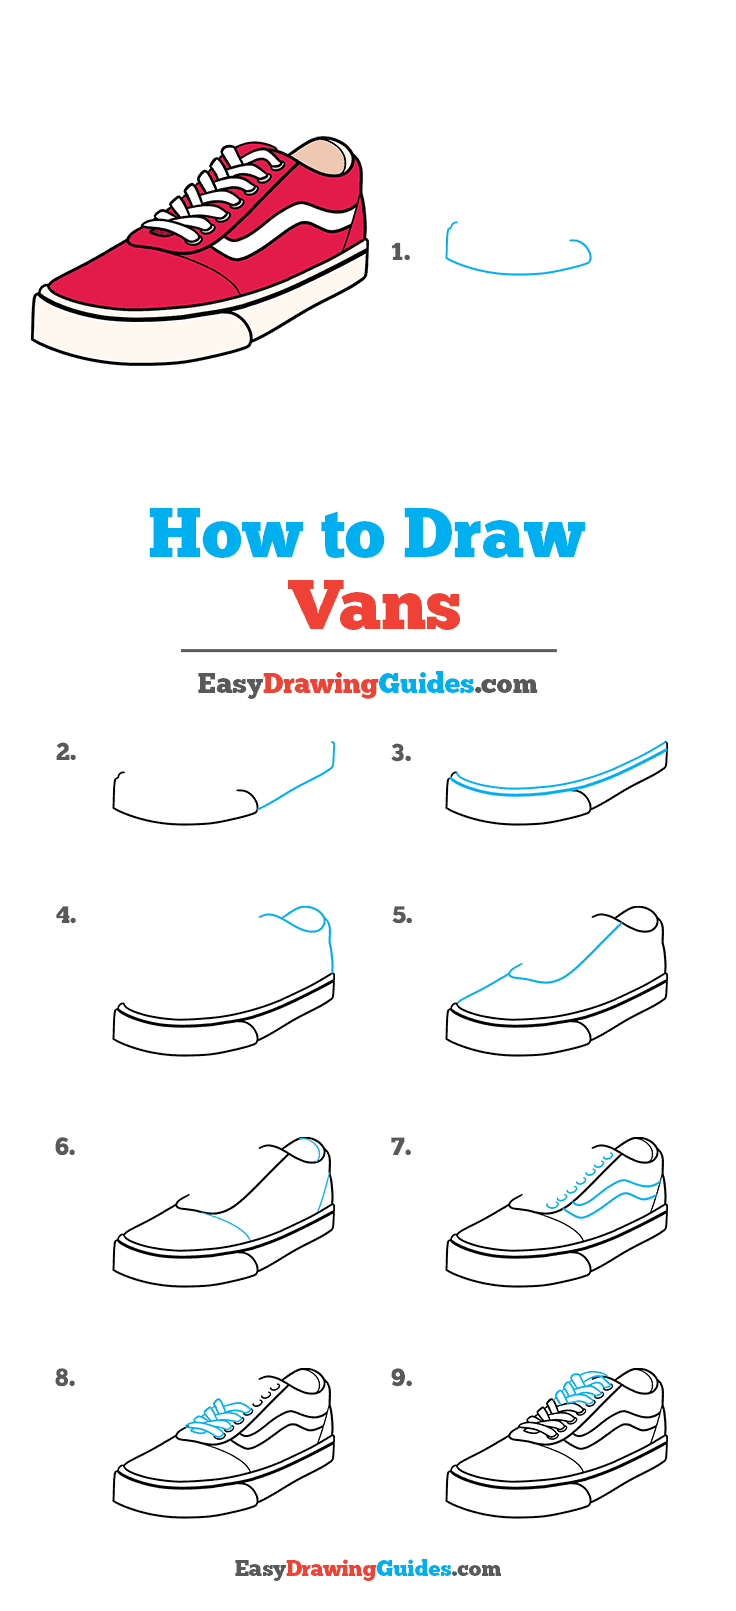 How to Draw Vans Step by Step Tutorial Image